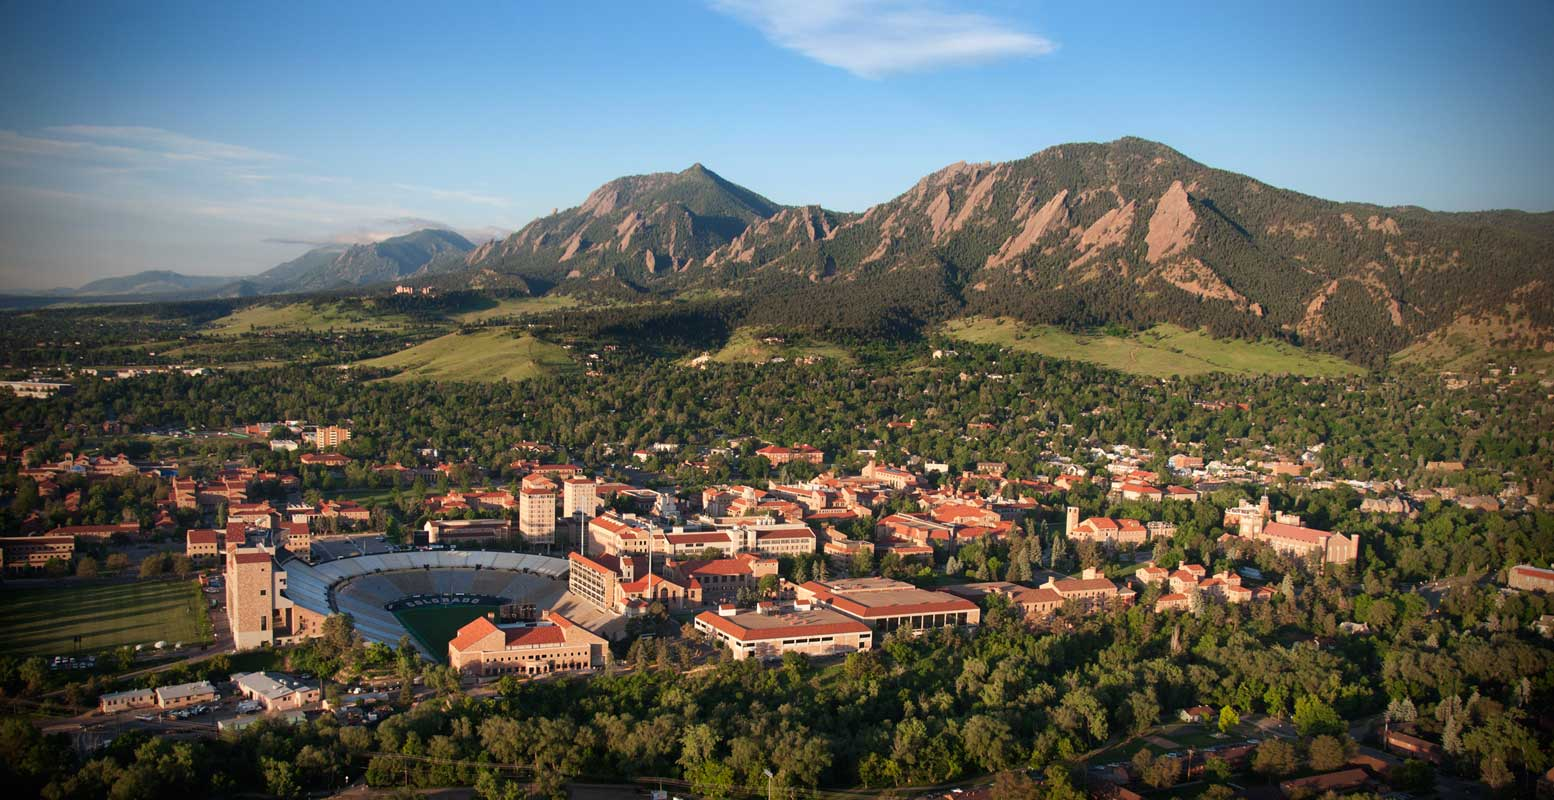 University of Colorado at Boulder Campus - Spring 2013